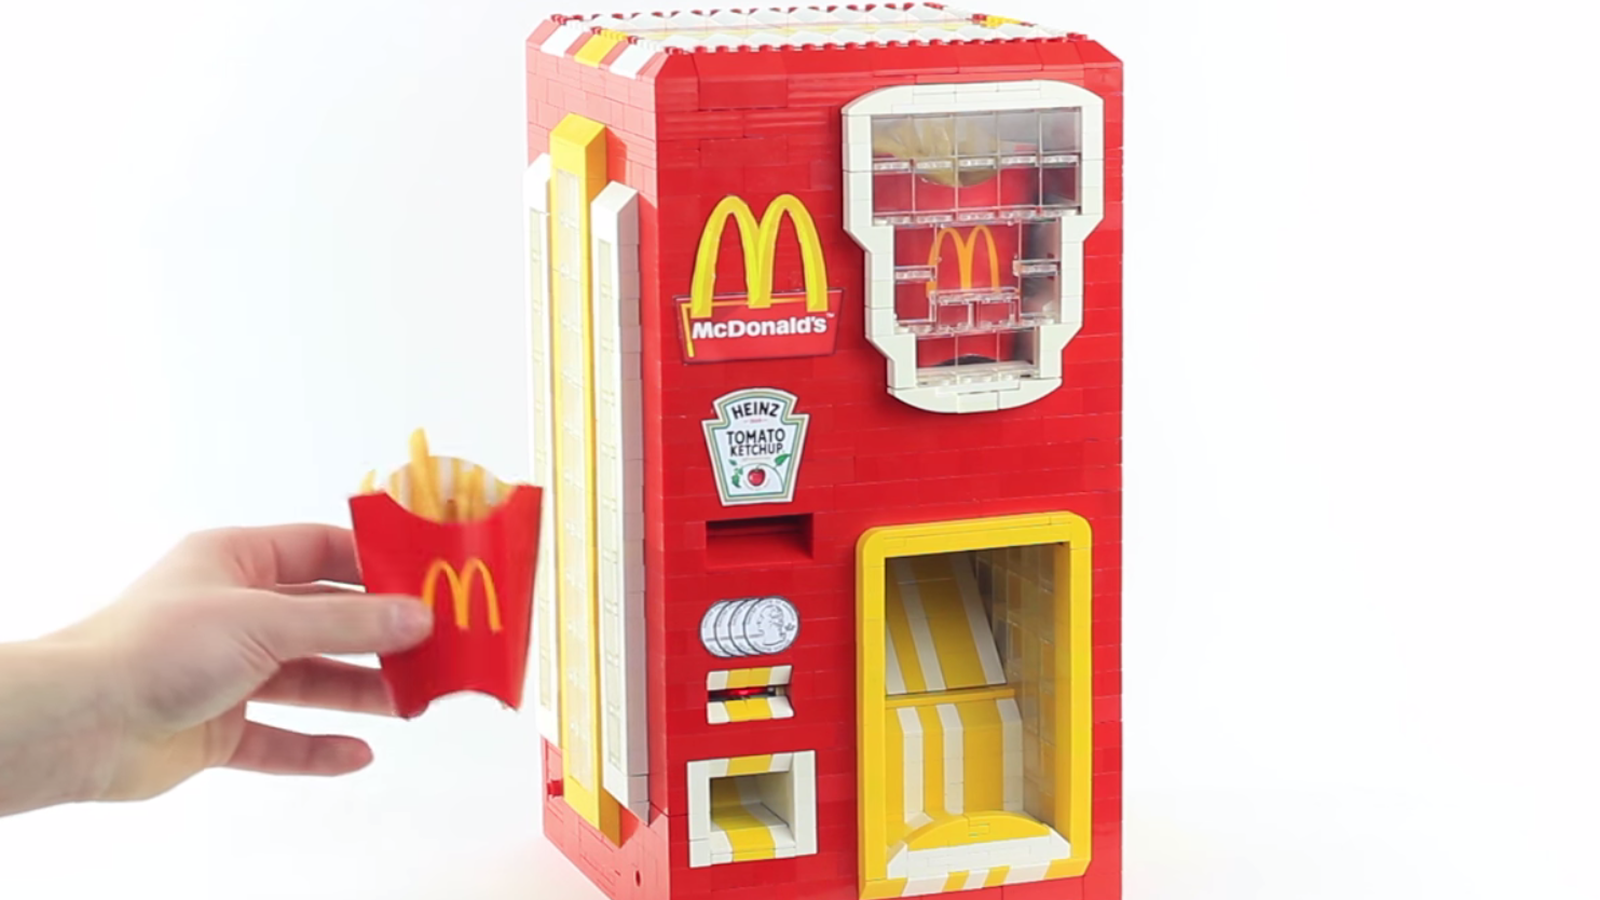 Lego Dispenser of Your Dreams Spits Out McDonald's Fries for $1